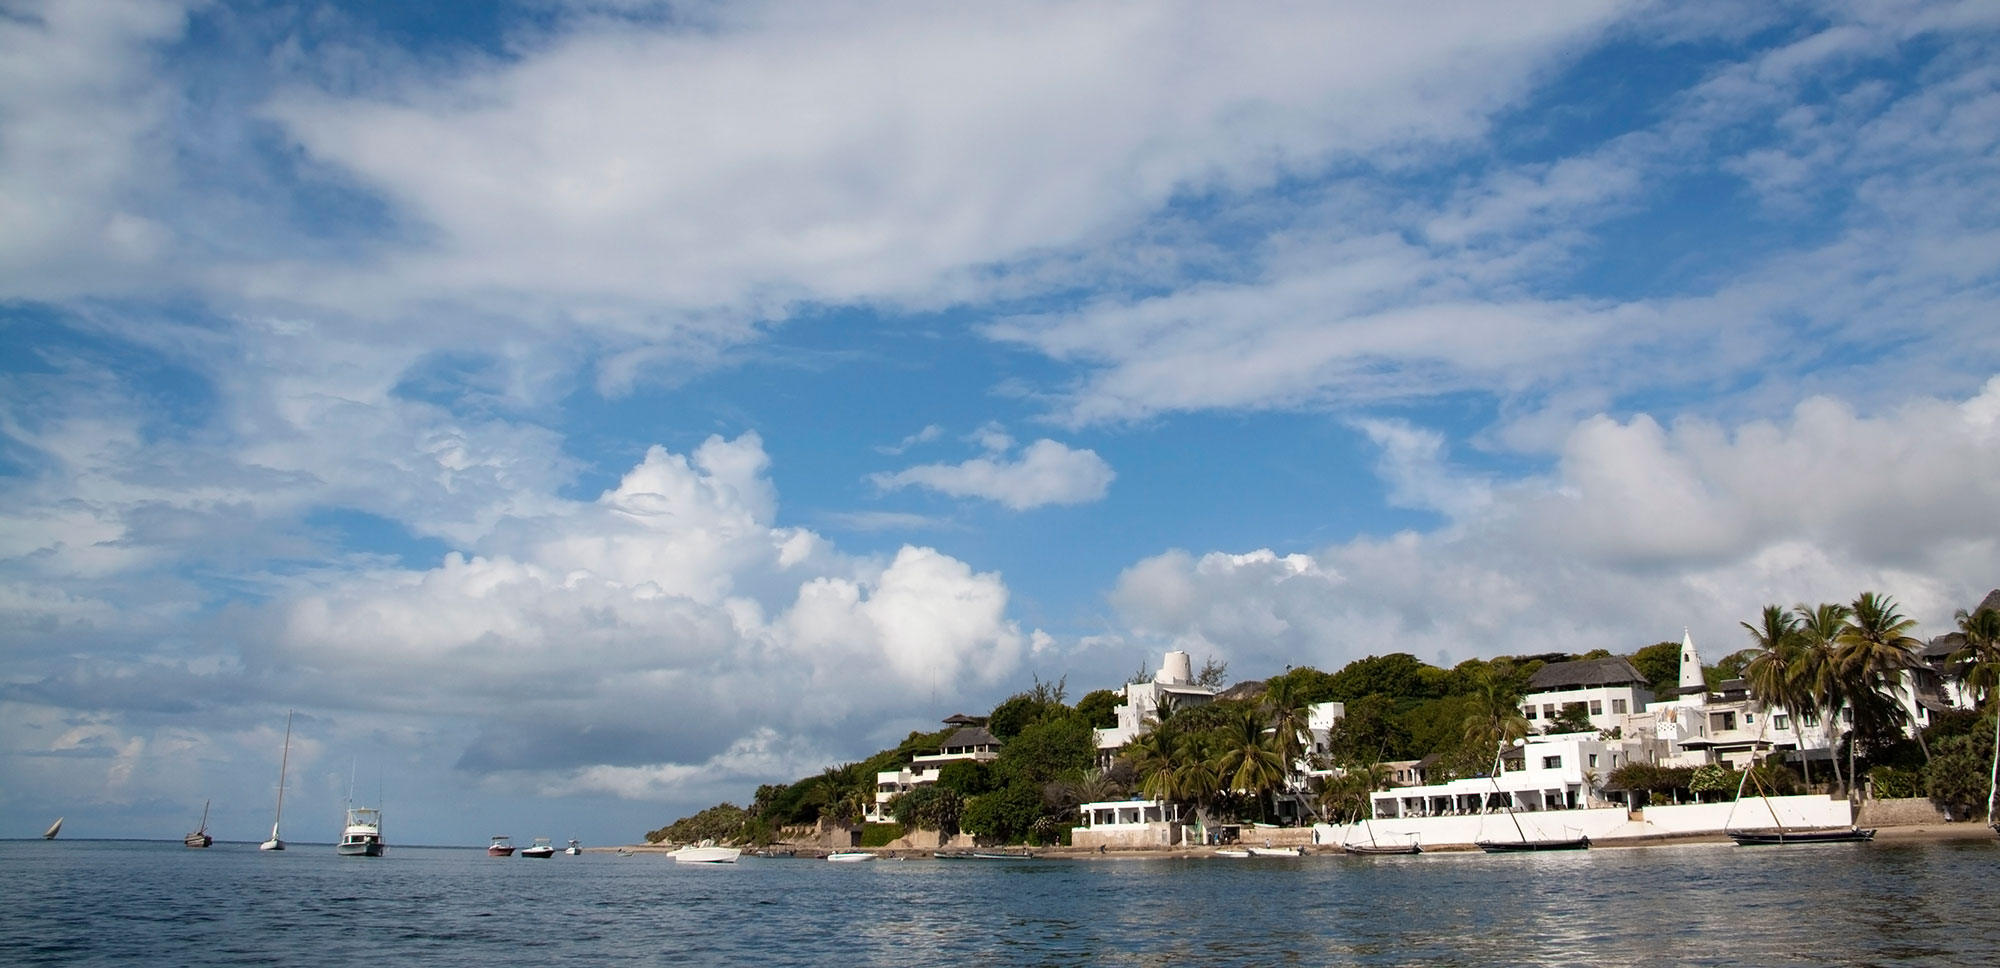 Lamu Island Kenya  city photos gallery : Peponi Hotel | Sun Safaris